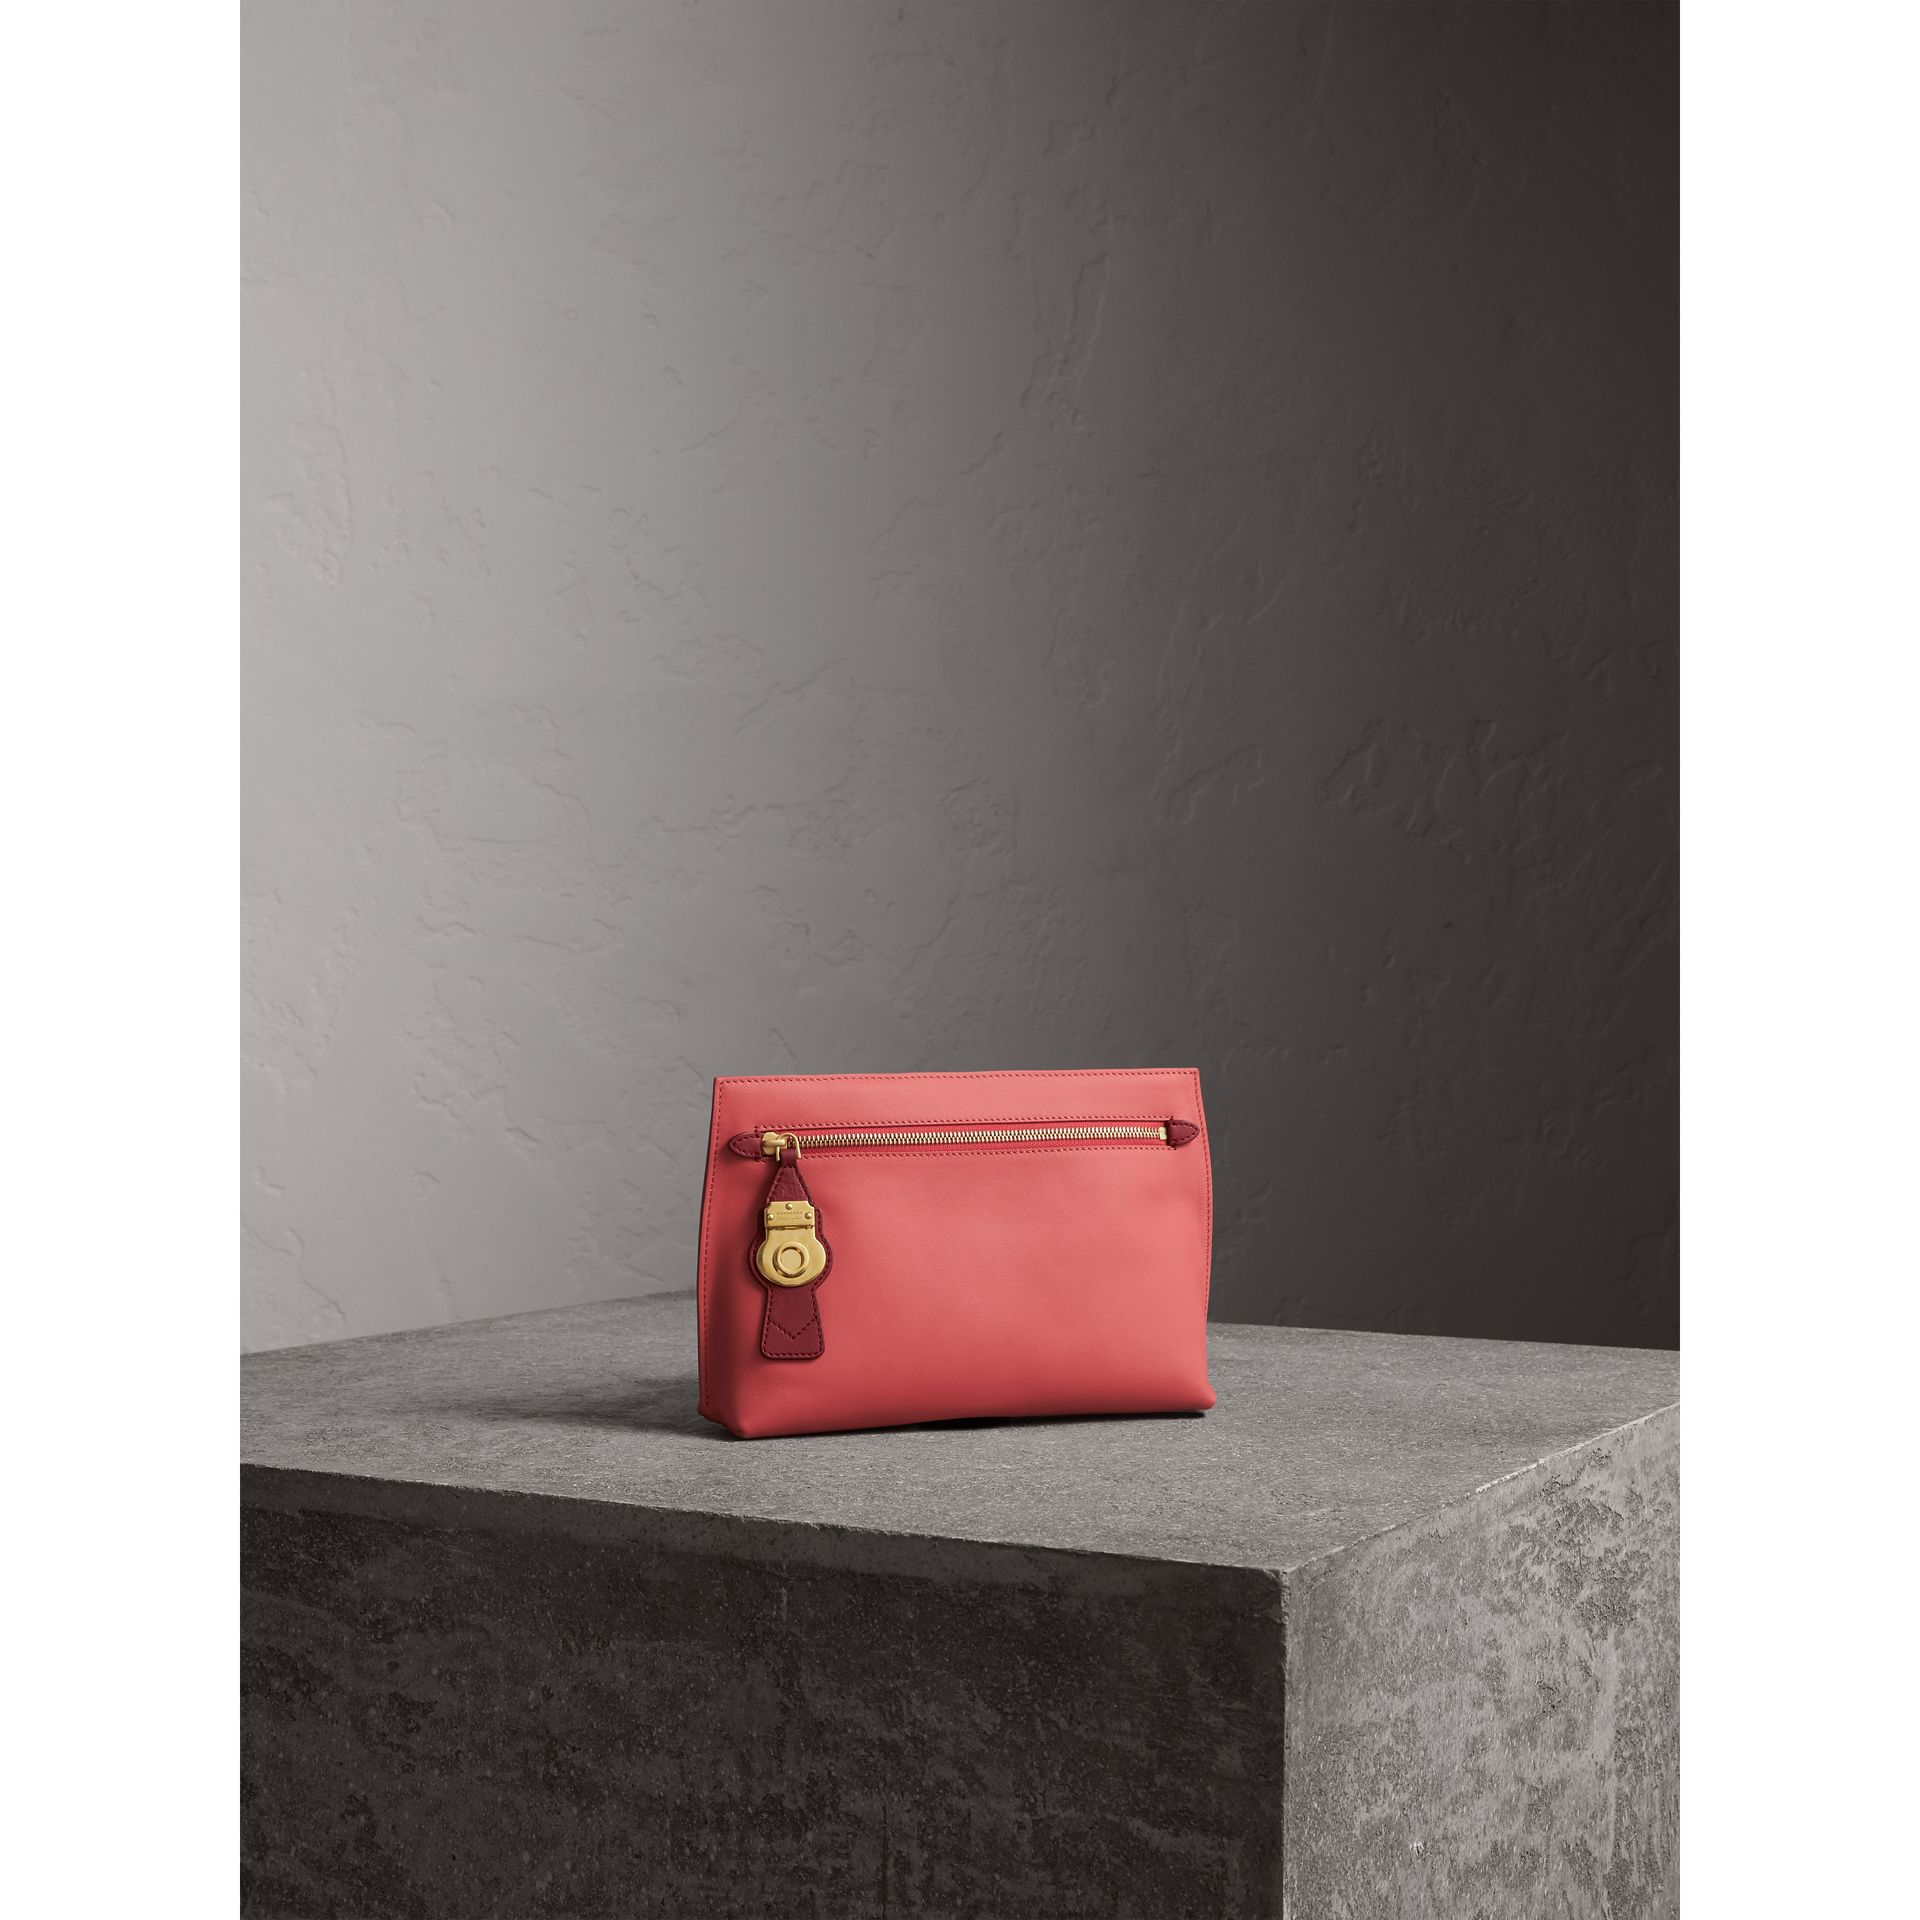 Two-tone Trench Leather Wristlet Pouch in Blossom Pink/antique Red - Women | Burberry - gallery image 6